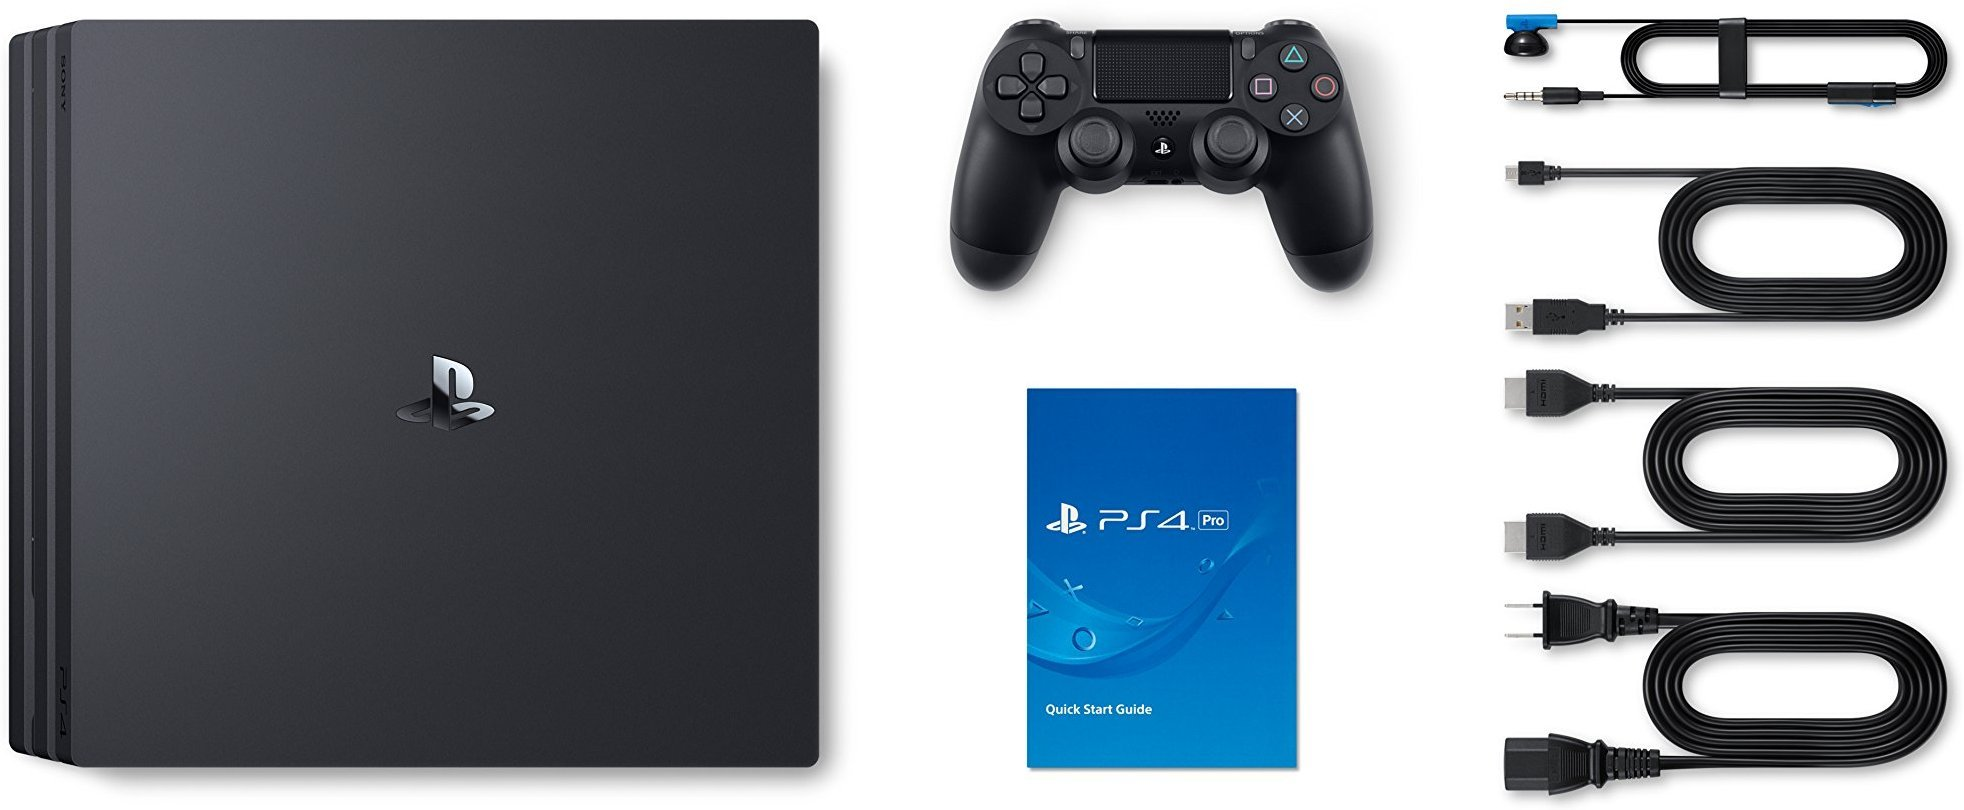 Newest SONY Playstation 4 Pro 4K HDR Gaming Console with Dualshock 4 Wireless Controller | 802.11a/b/g/n/ac | BD x 6 CAV | Customize Your Own Special PS4 Storage Upto 1TB/2TB HDD & SSD